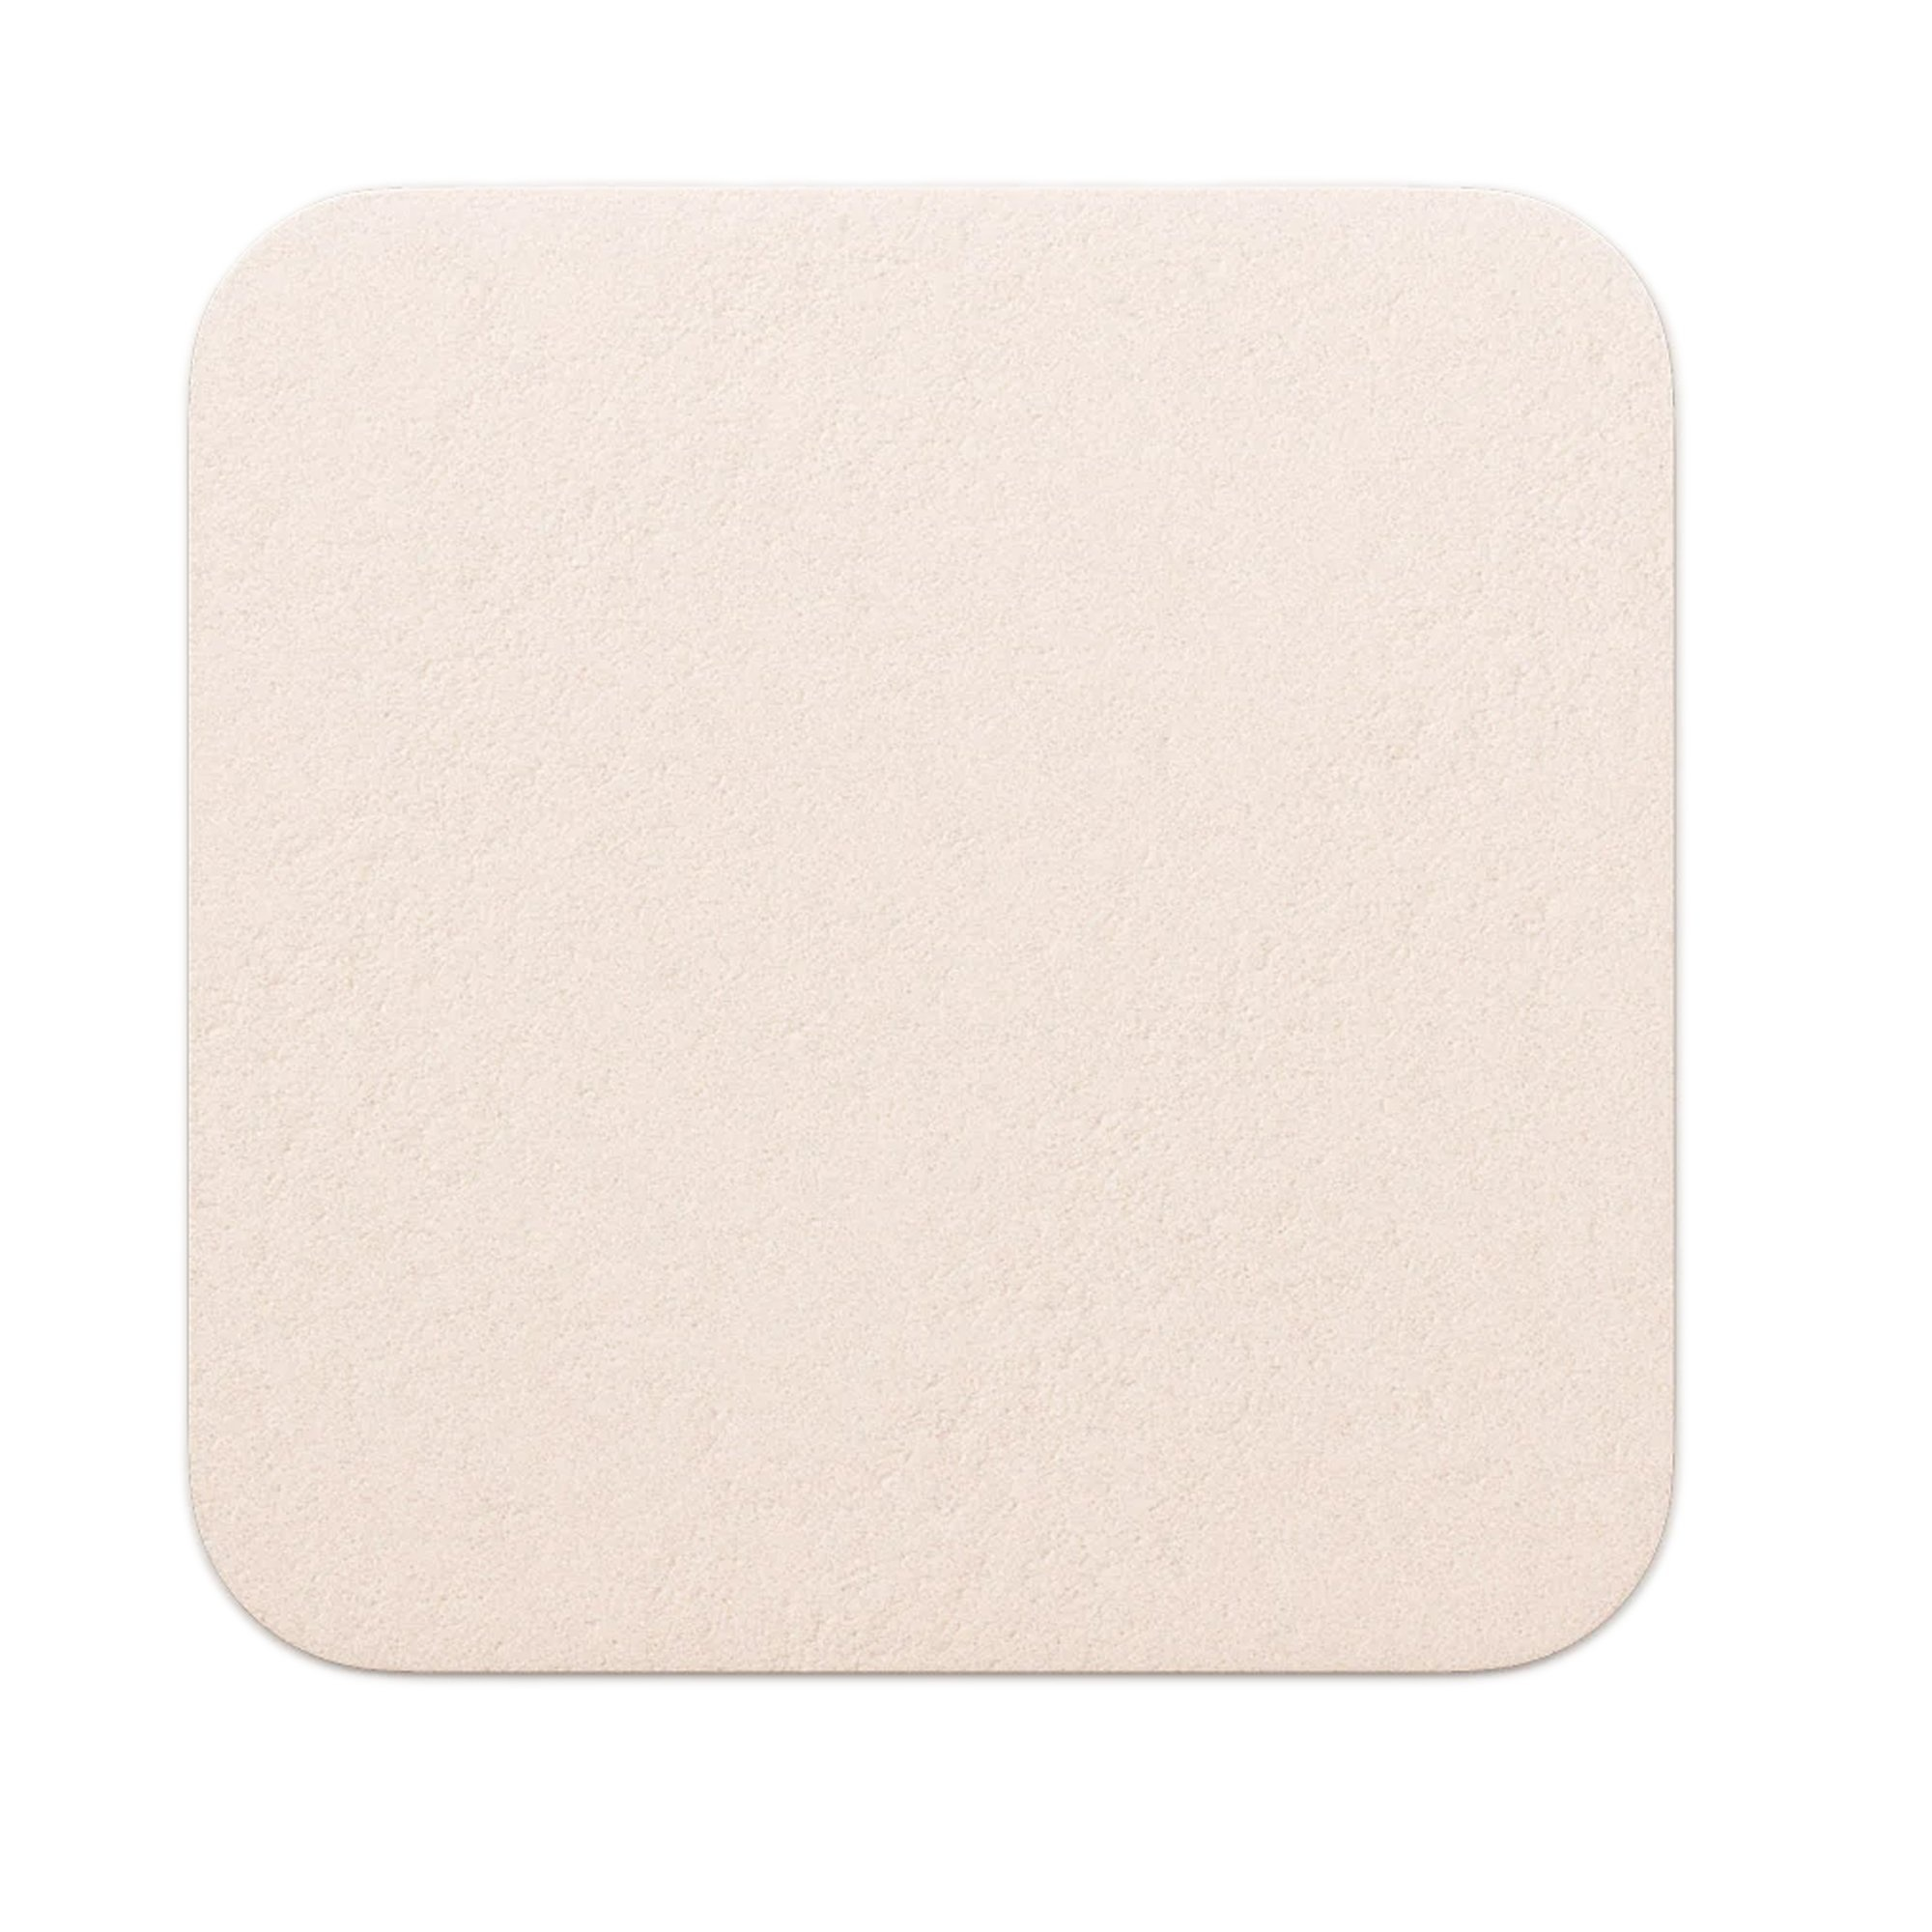 """Molnlycke Mepilex Lite Silicone Adhesive without Border Thin Silicone Foam Dressing, 2-2/5 X 3-2/5"""", 284090, Box of 5"""